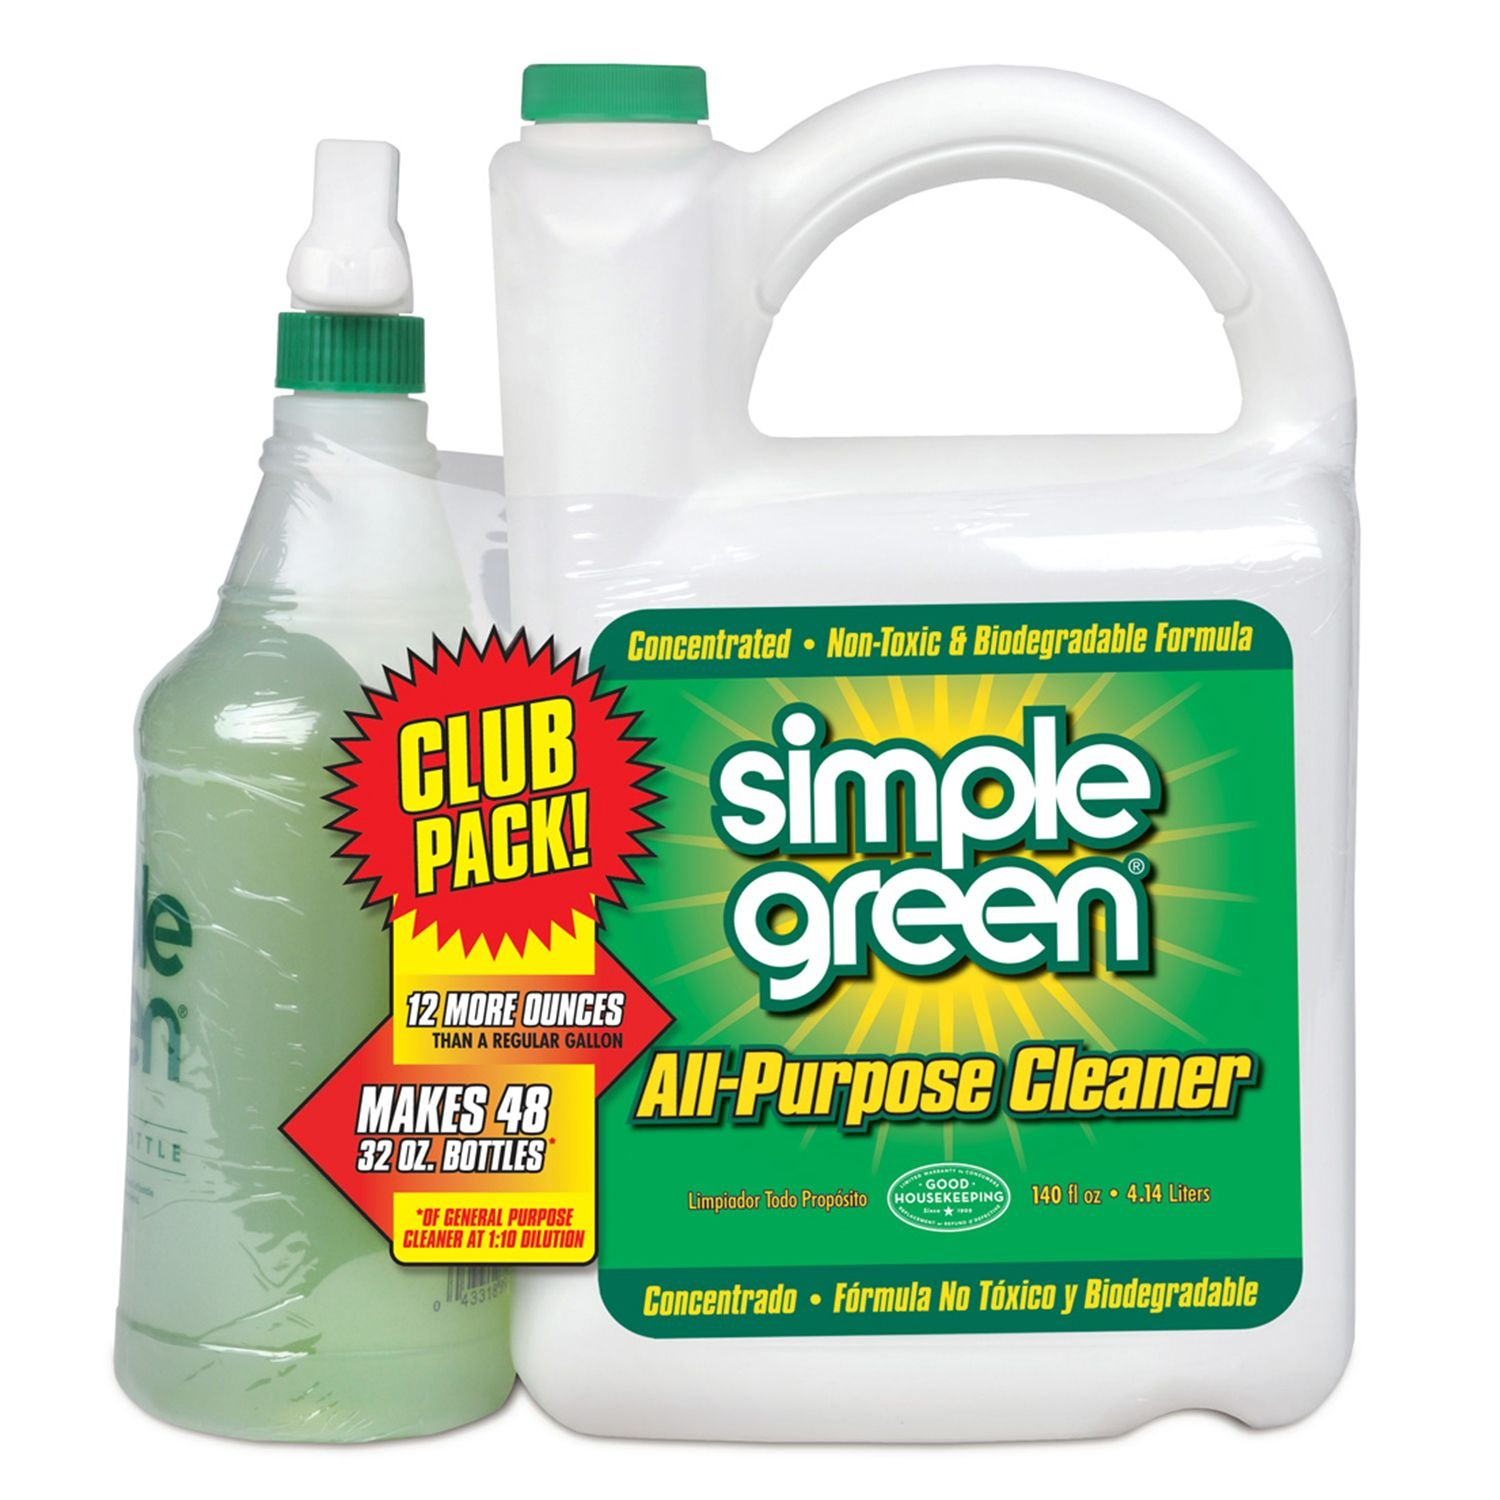 Carpet Cleaner Orlando Images Green T Cleaning